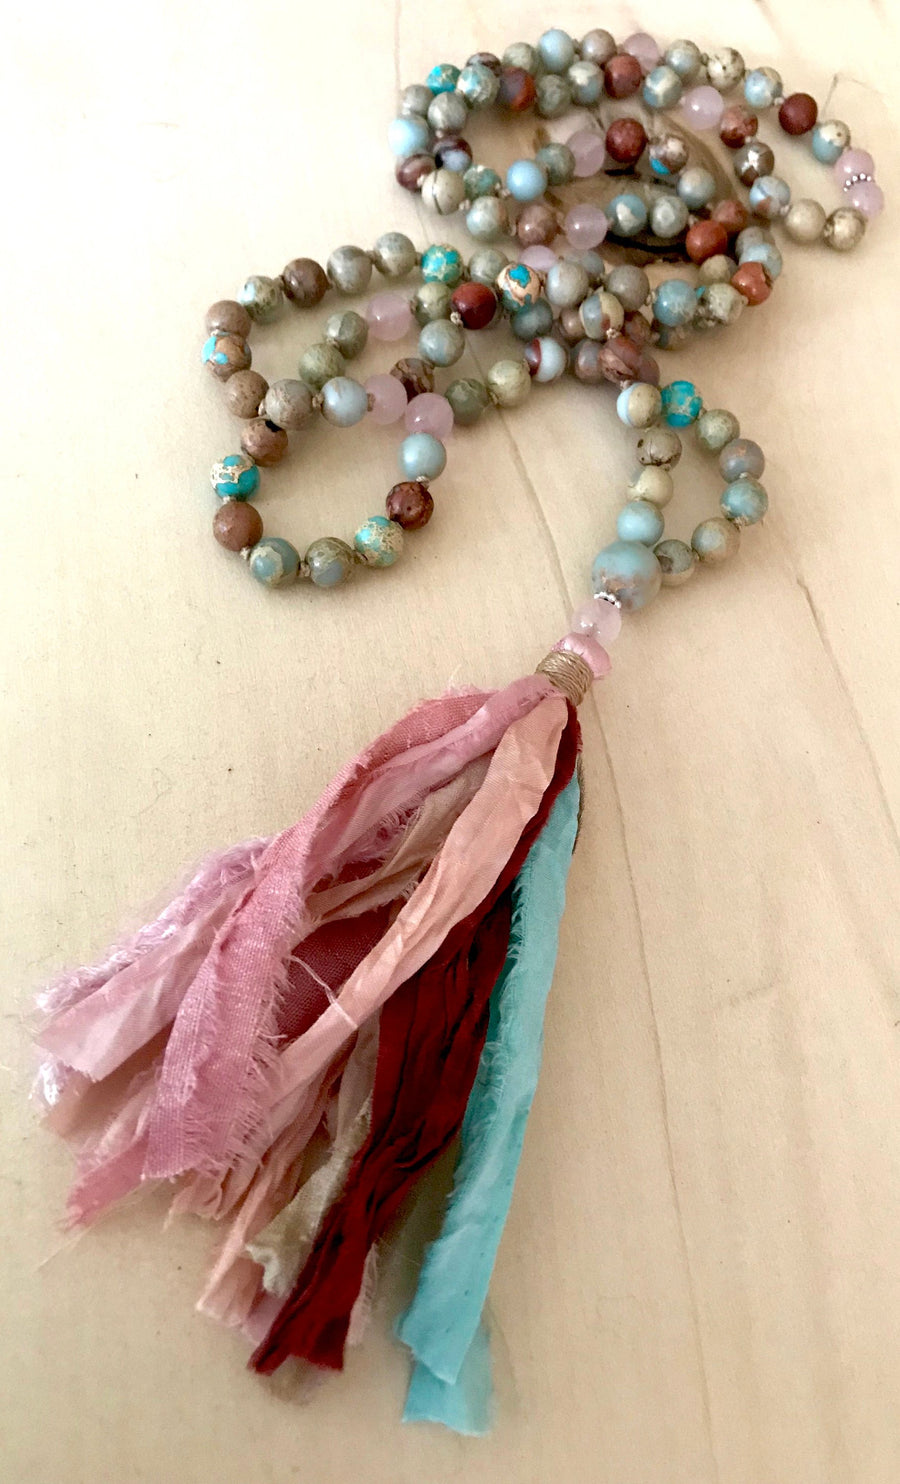 Breast Cancer Survivor African Opal and Rose Quartz Healing Mala Prayer Beads for Healing, Strength and Self Love